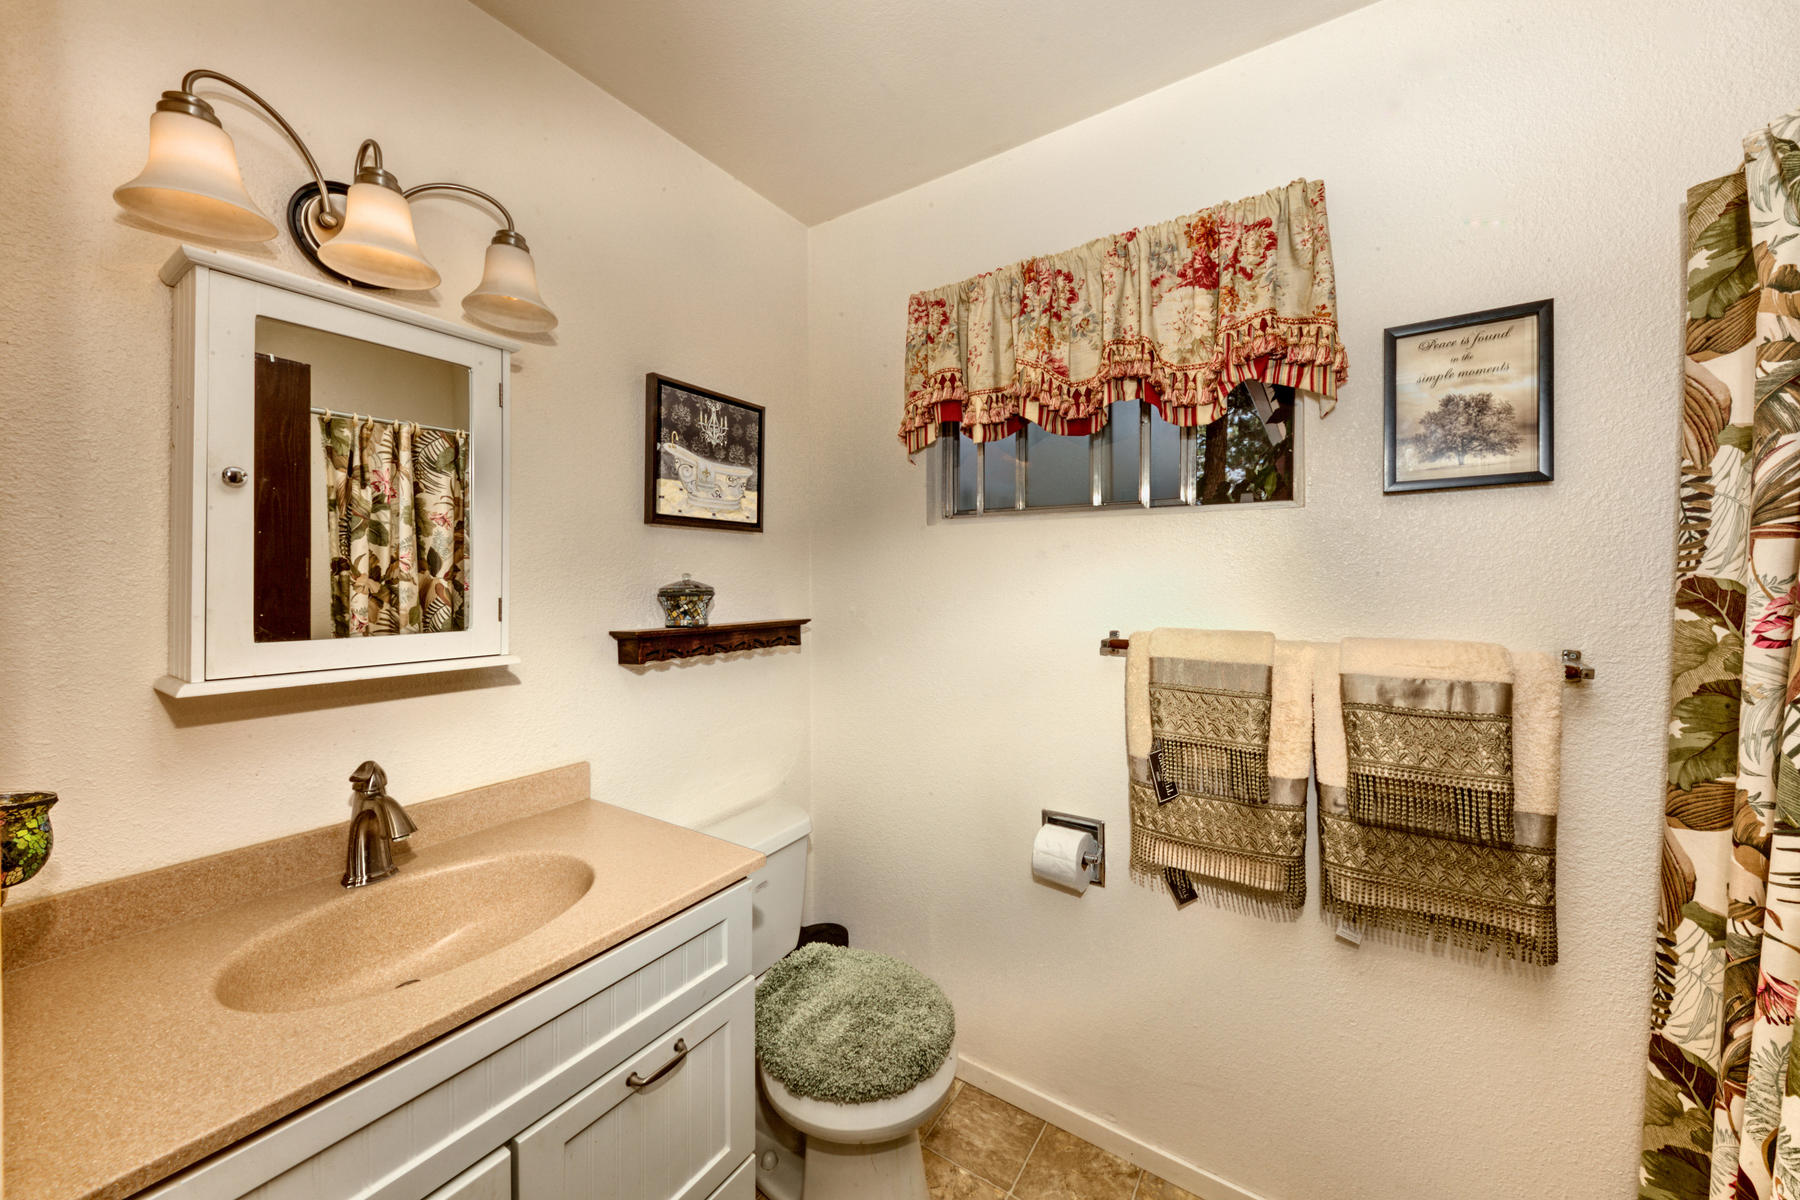 Additional photo for property listing at 277 Grizzly Way, Portola, Ca 96122 277 Grizzly Way 波托拉, 加利福尼亚州 96122 美国